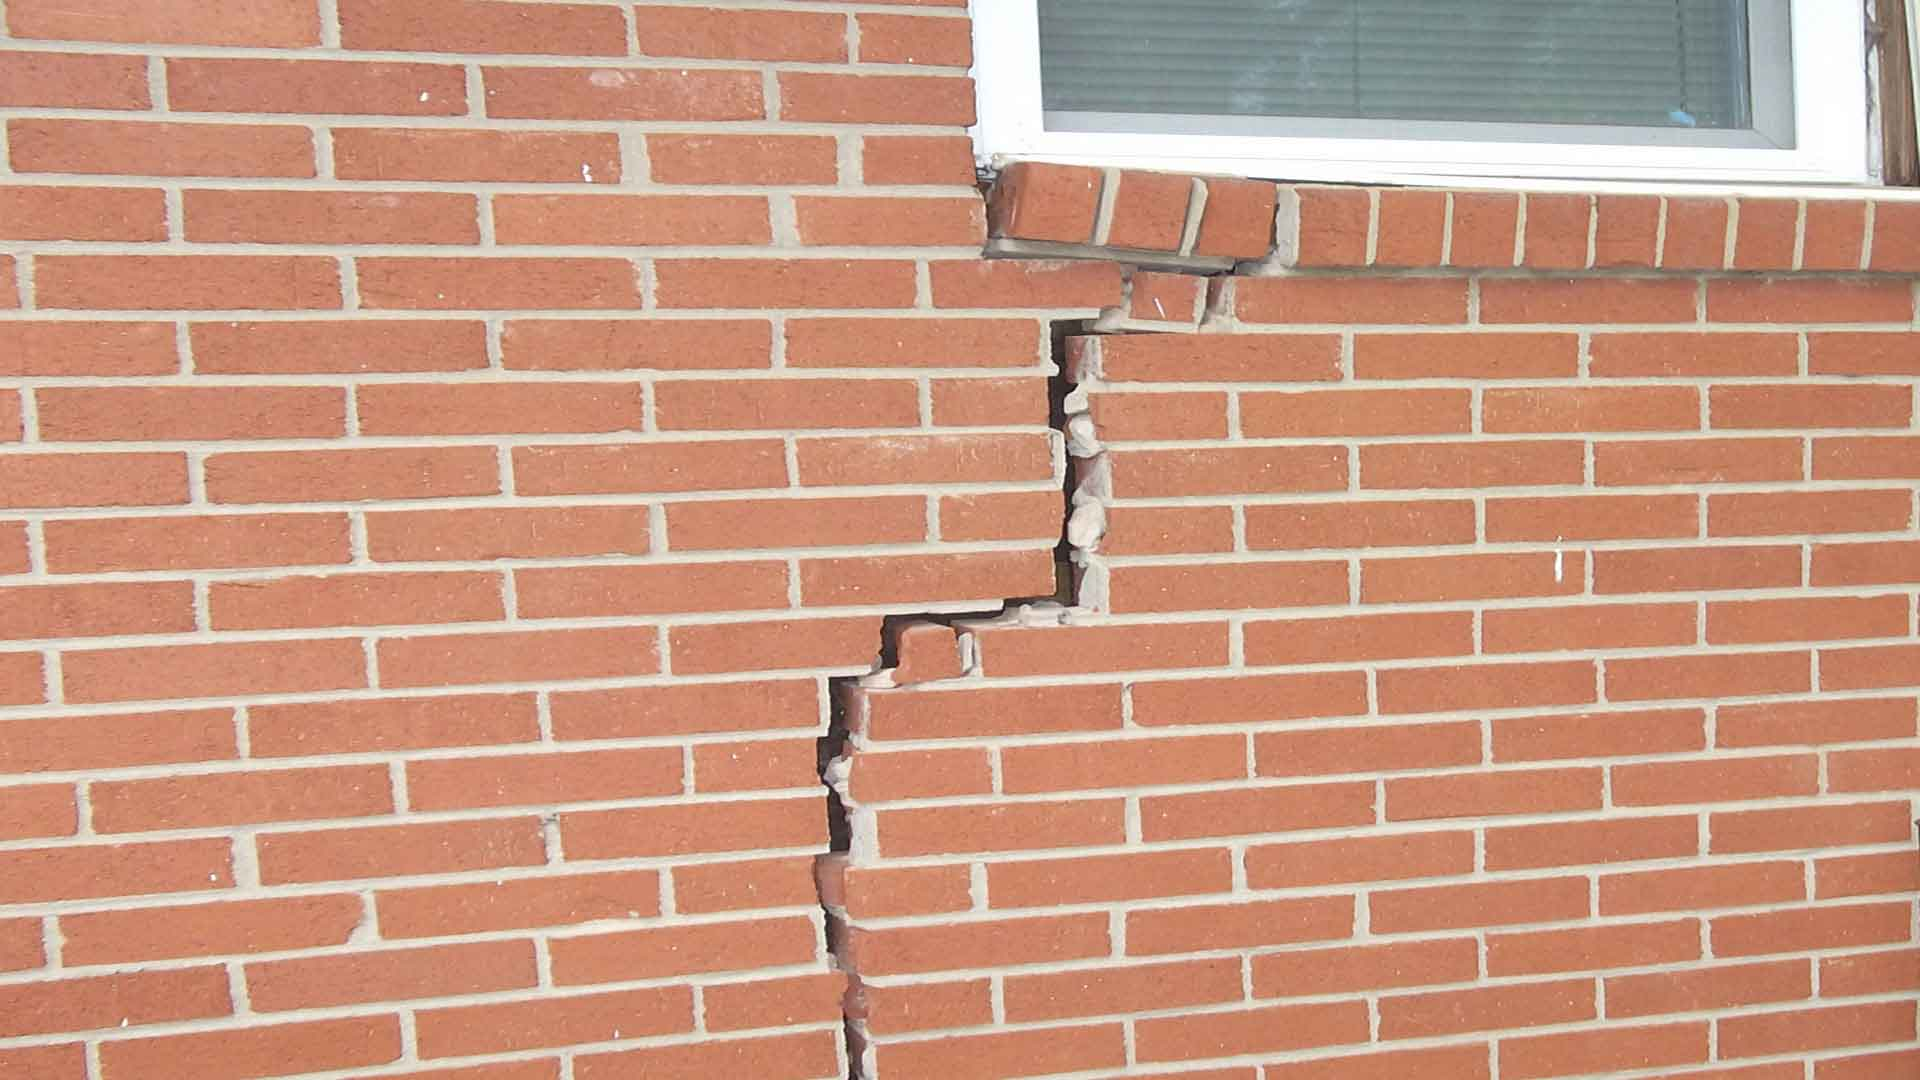 brick-home-with-crack-in-brick-wall-due-to-foundation-settling